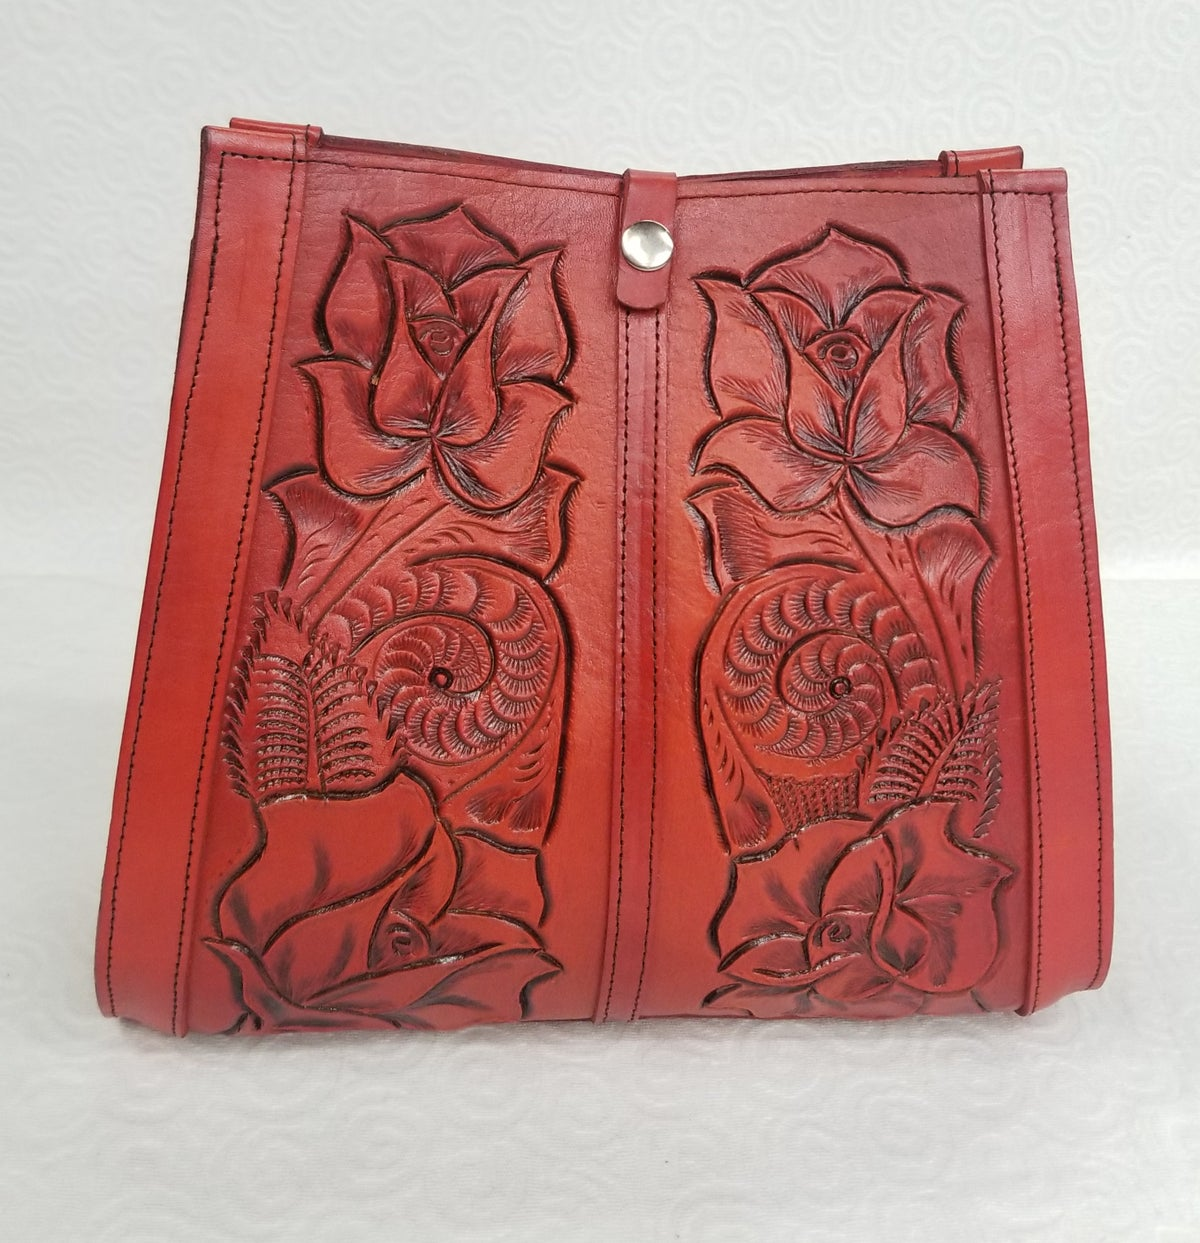 Image of Orange Colored Hand-Tooled Leather Tote Bag